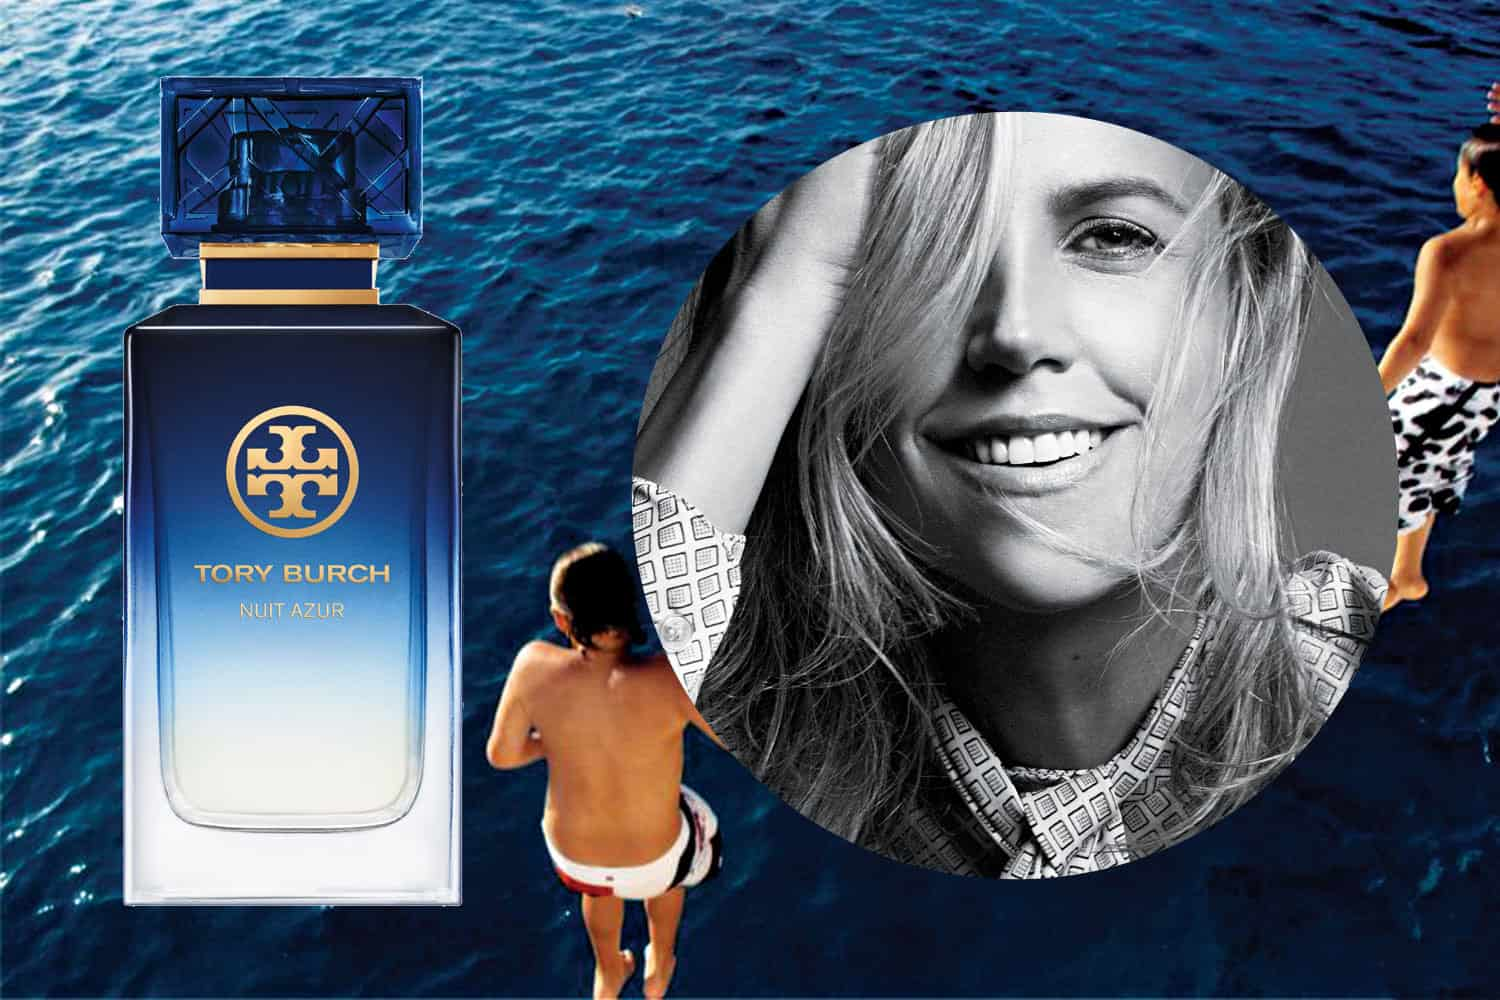 312439d2d3 When it comes to capturing the essence of summer, Tory Burch is in a class  that's entirely her own. This season, she debuts her latest fragrance, Nuit  Azur, ...